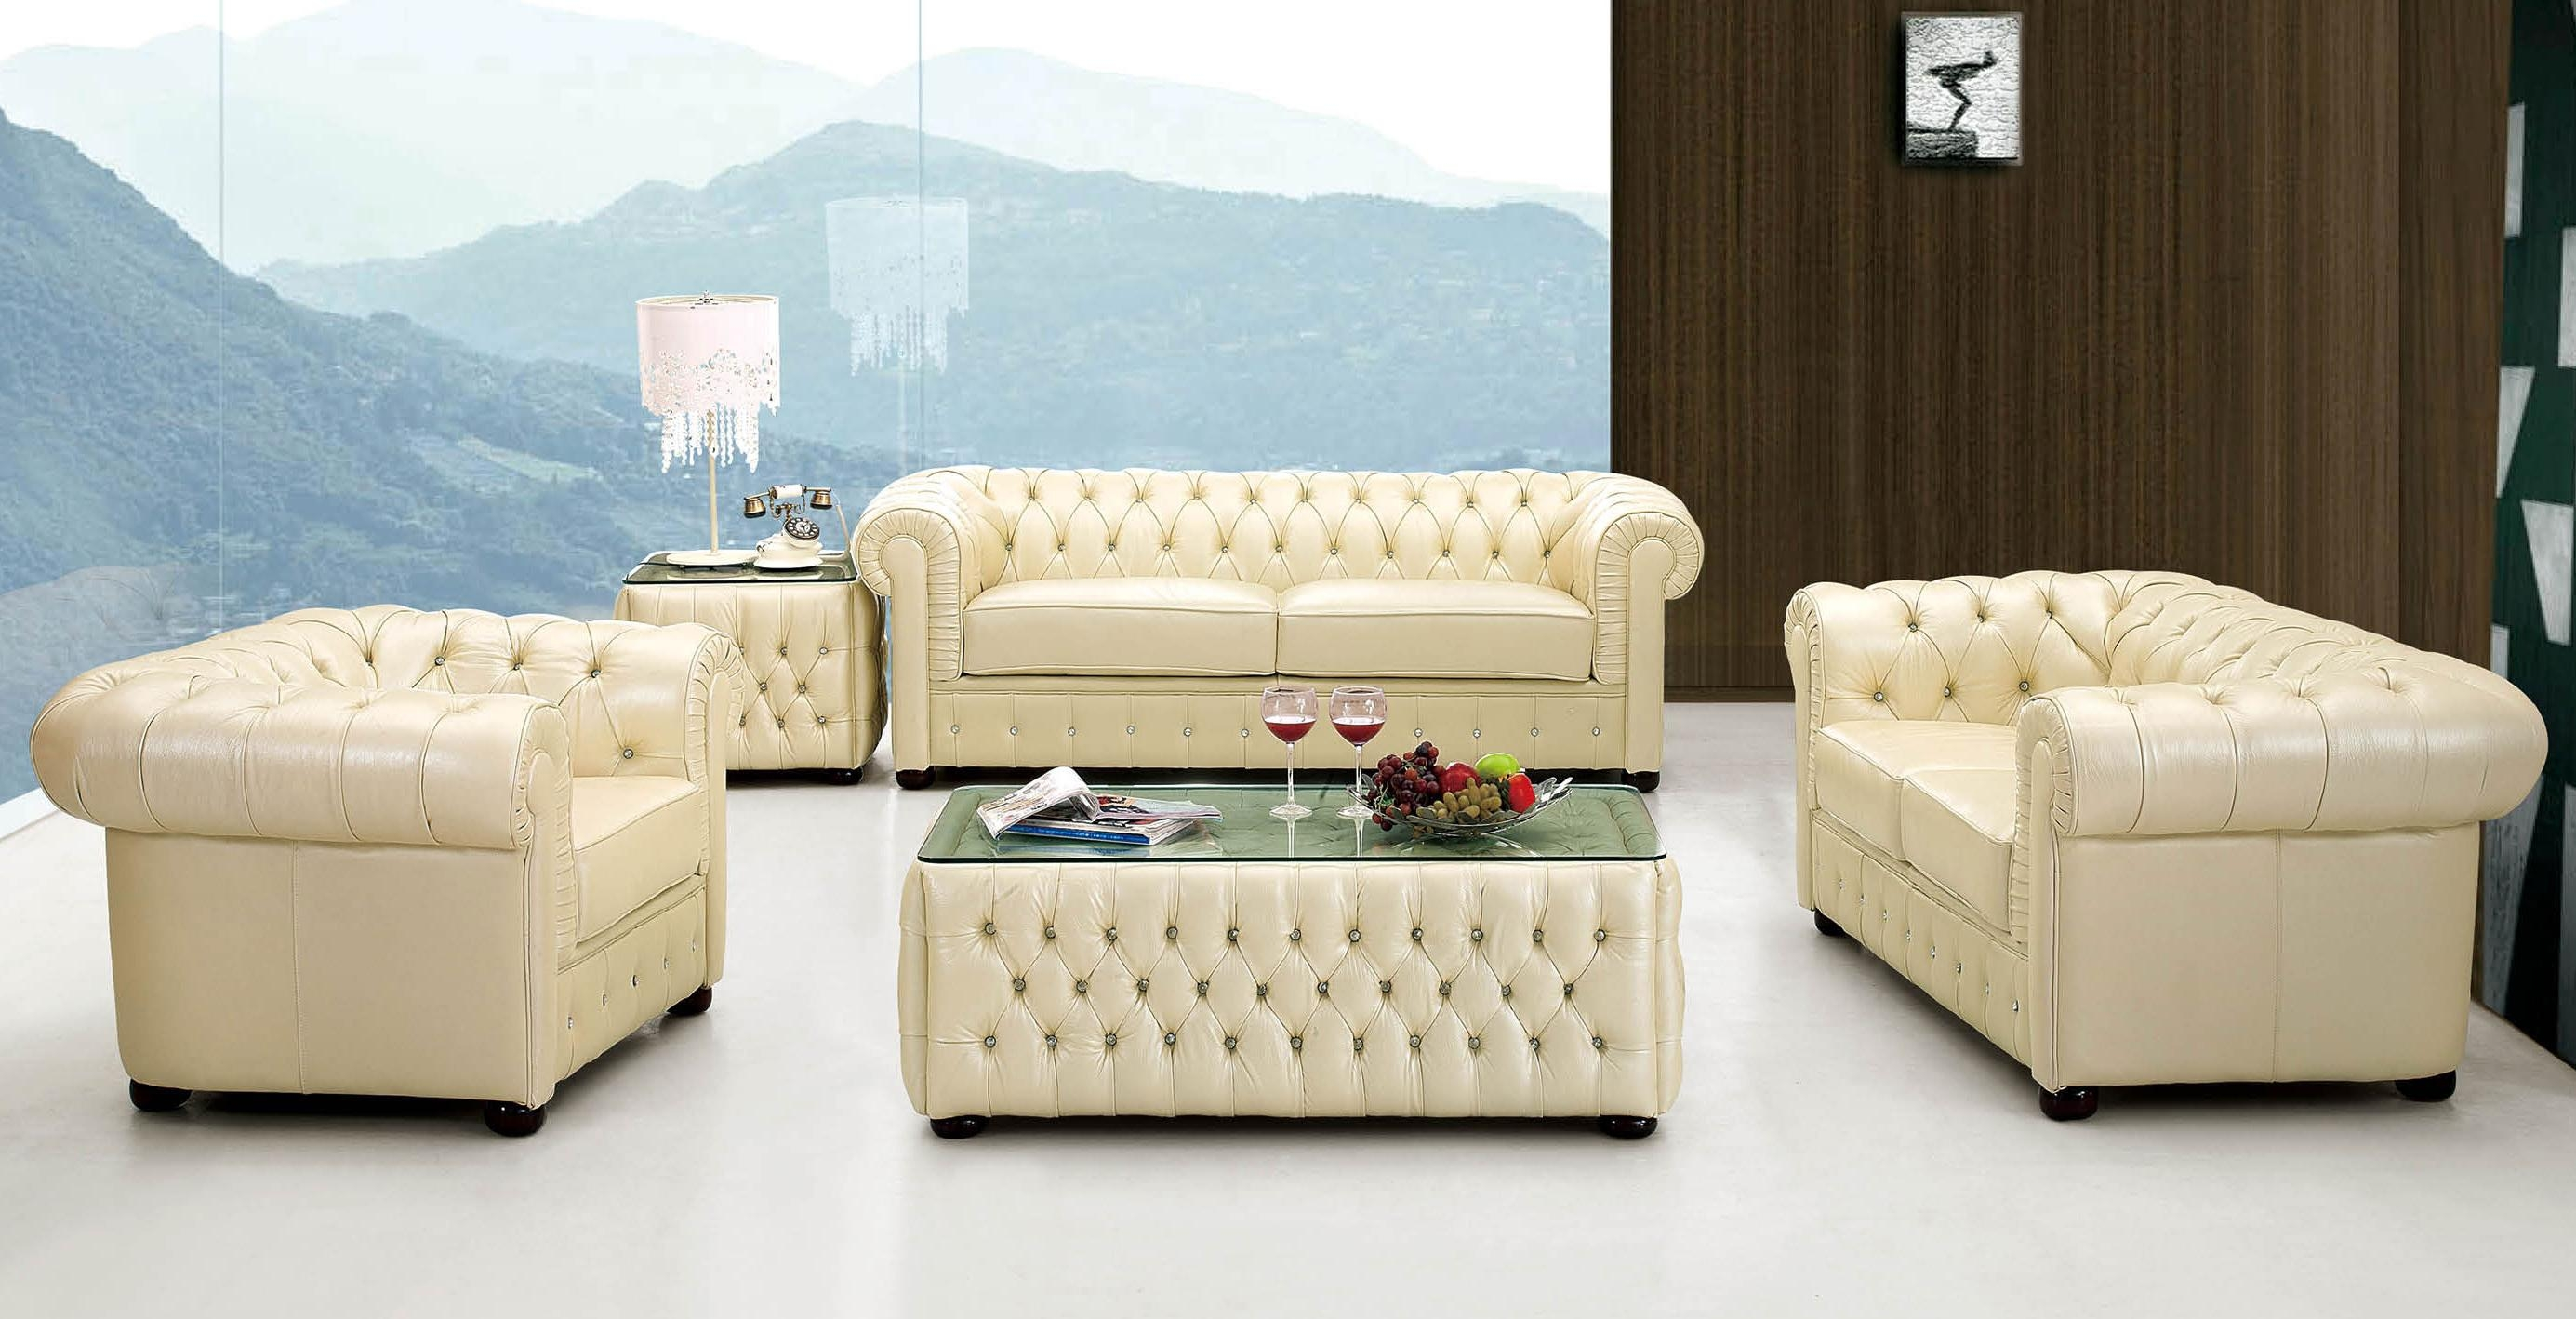 2018 latest ivory leather sofas sofa ideas for Ivory couch living room ideas